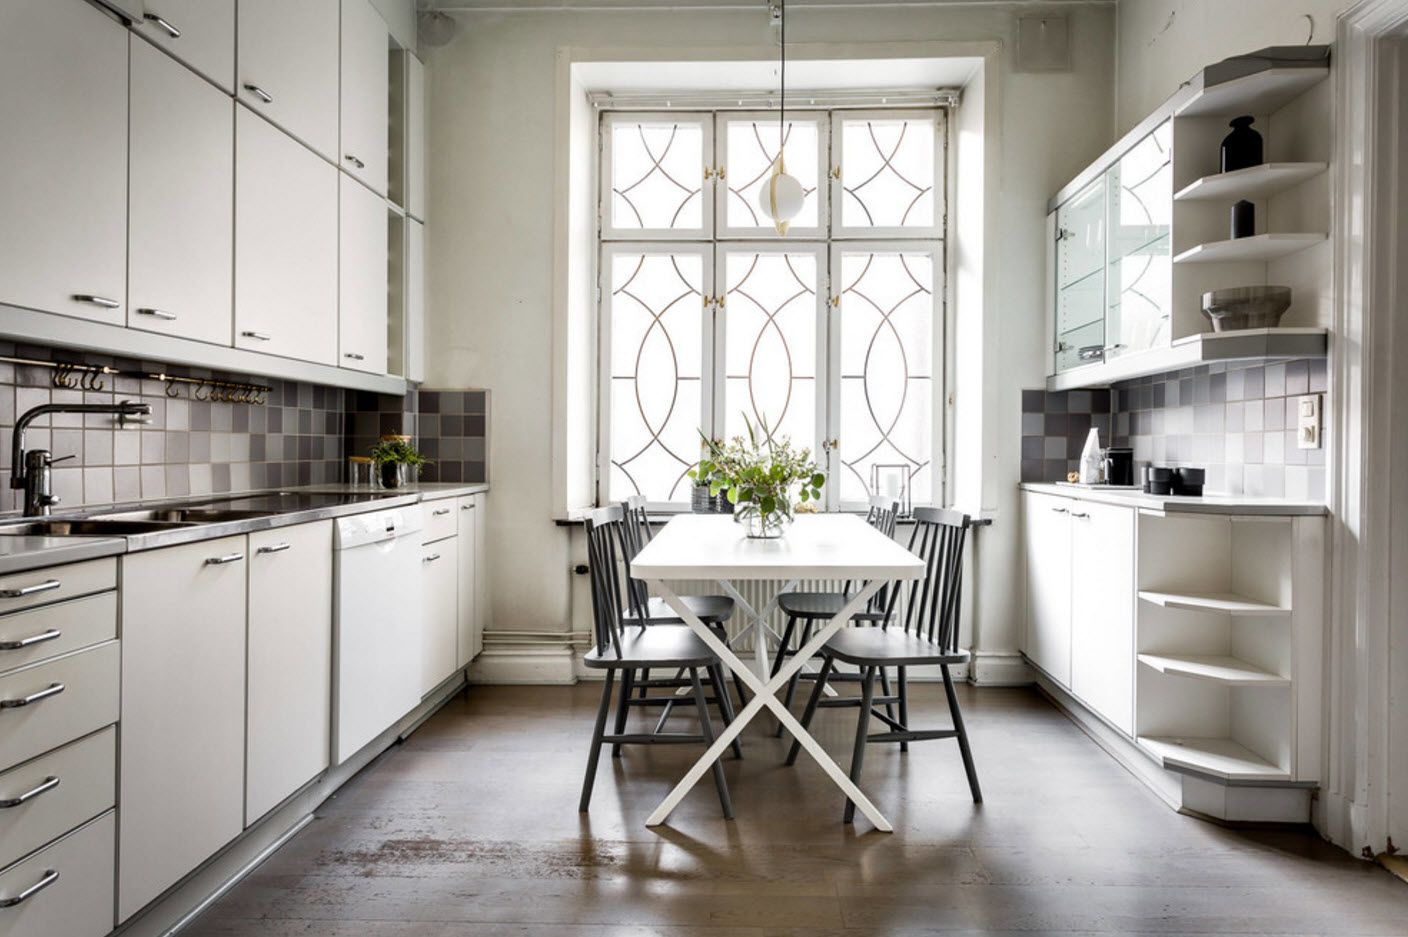 Nice circle latticed window in the modern kitchen setting